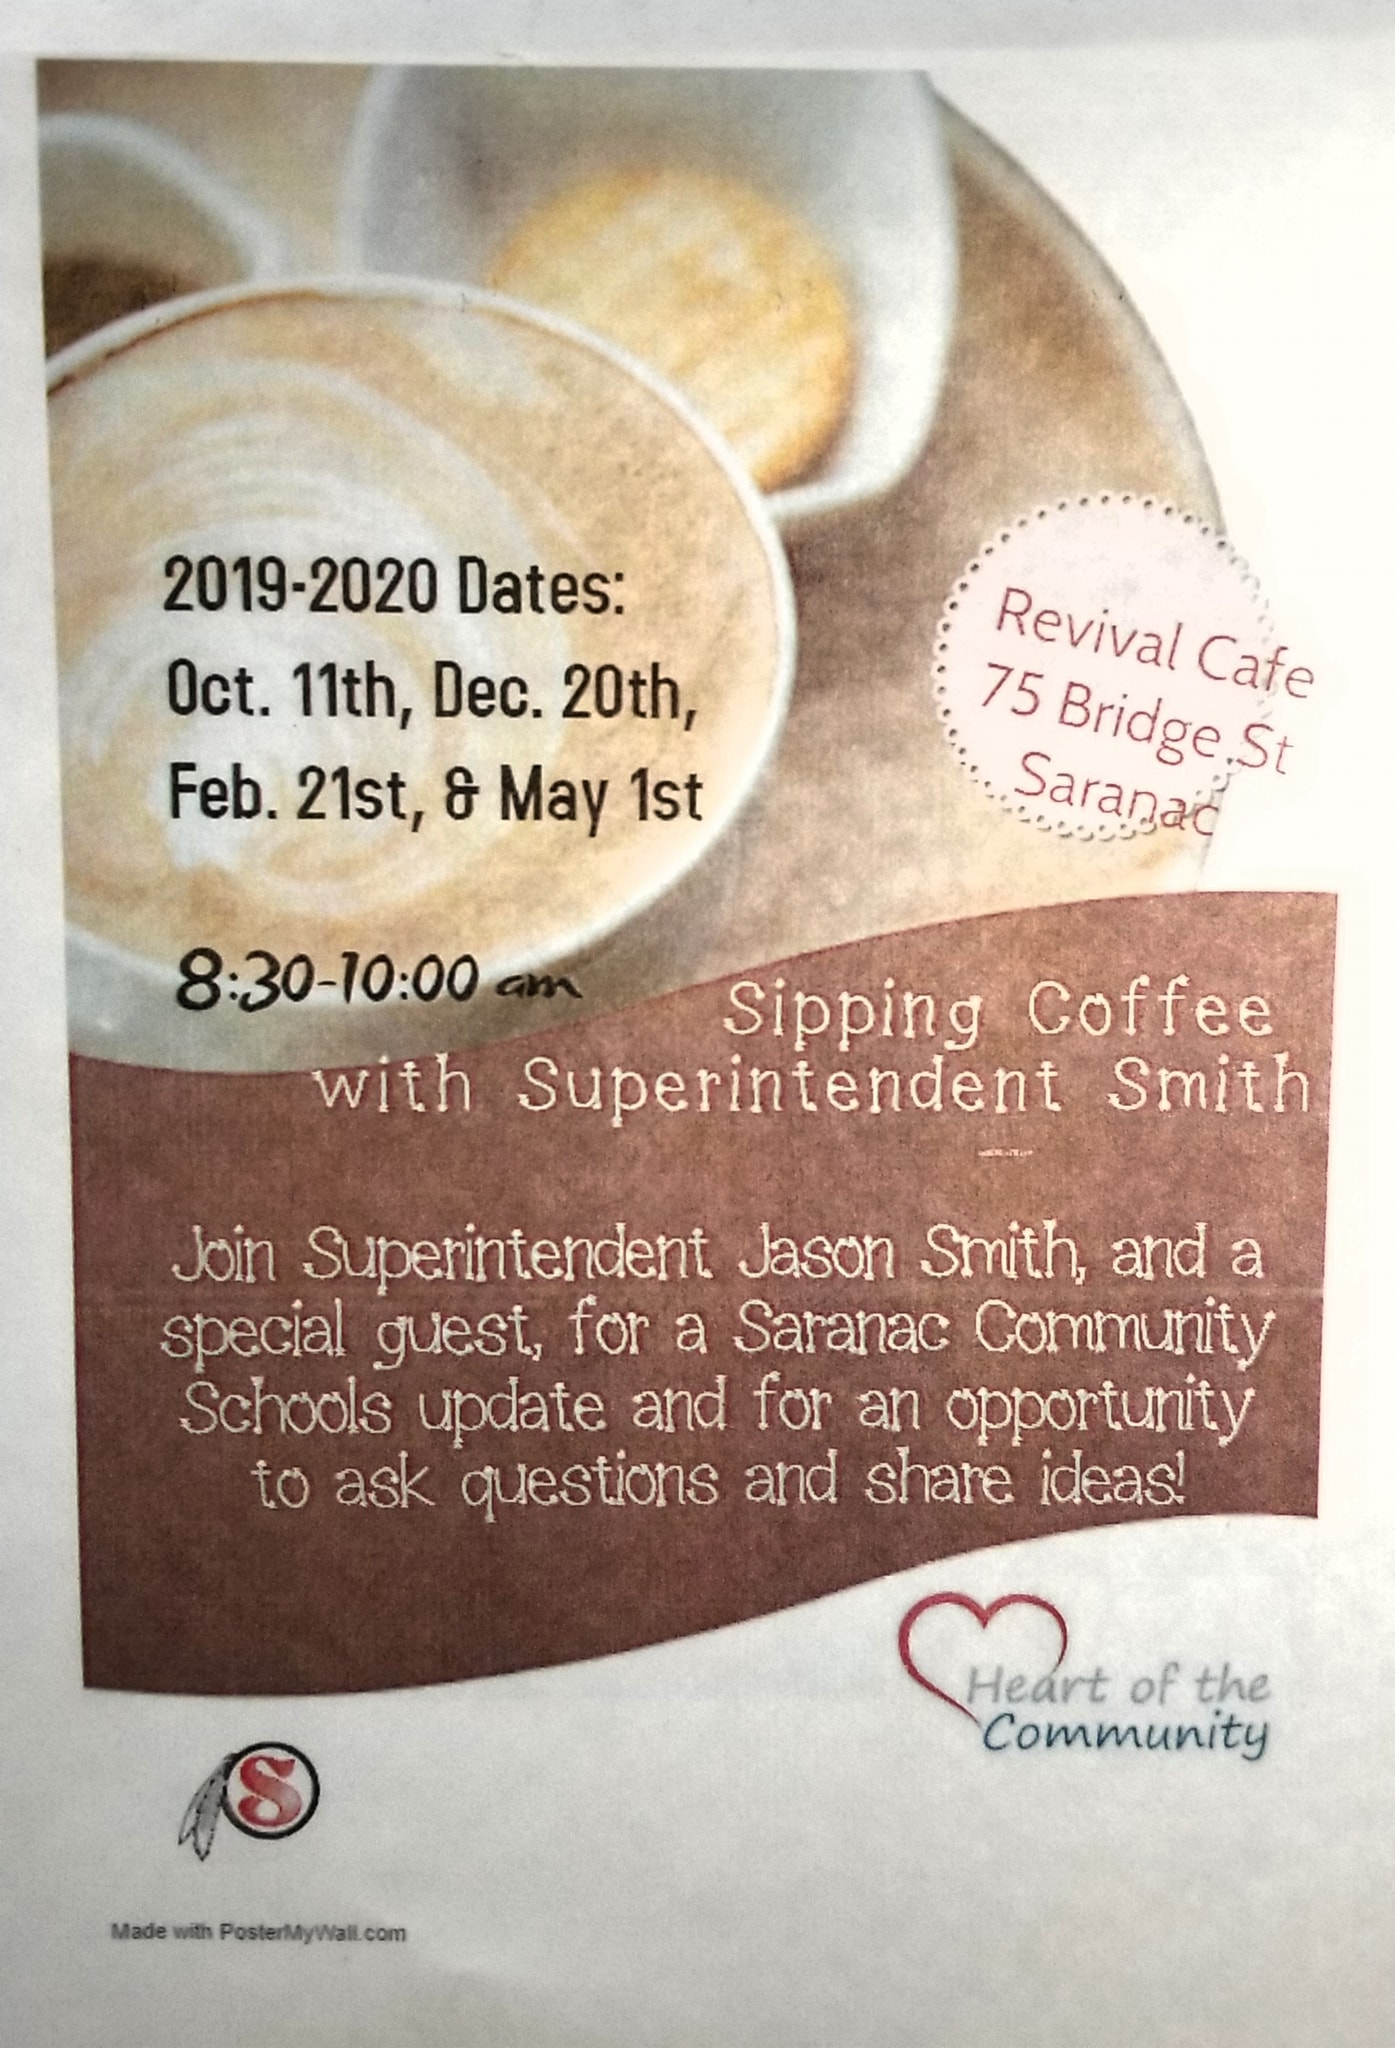 Sip Coffee with Superintendent Smith